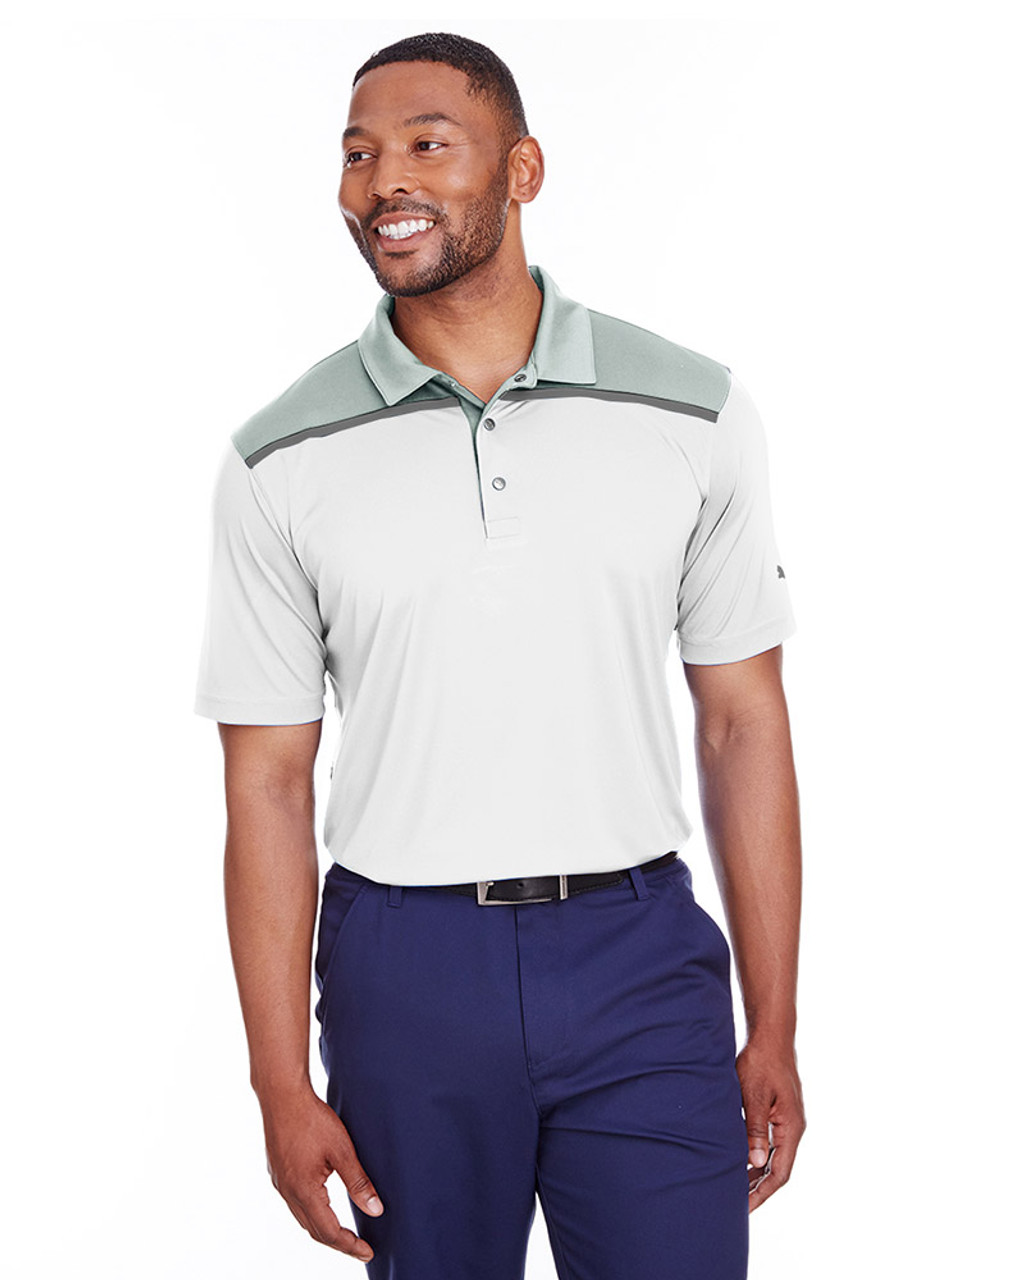 Bright White/Qurry - 596805 Puma Golf Men's Bonded Colorblock Polo | Blankclothing.ca